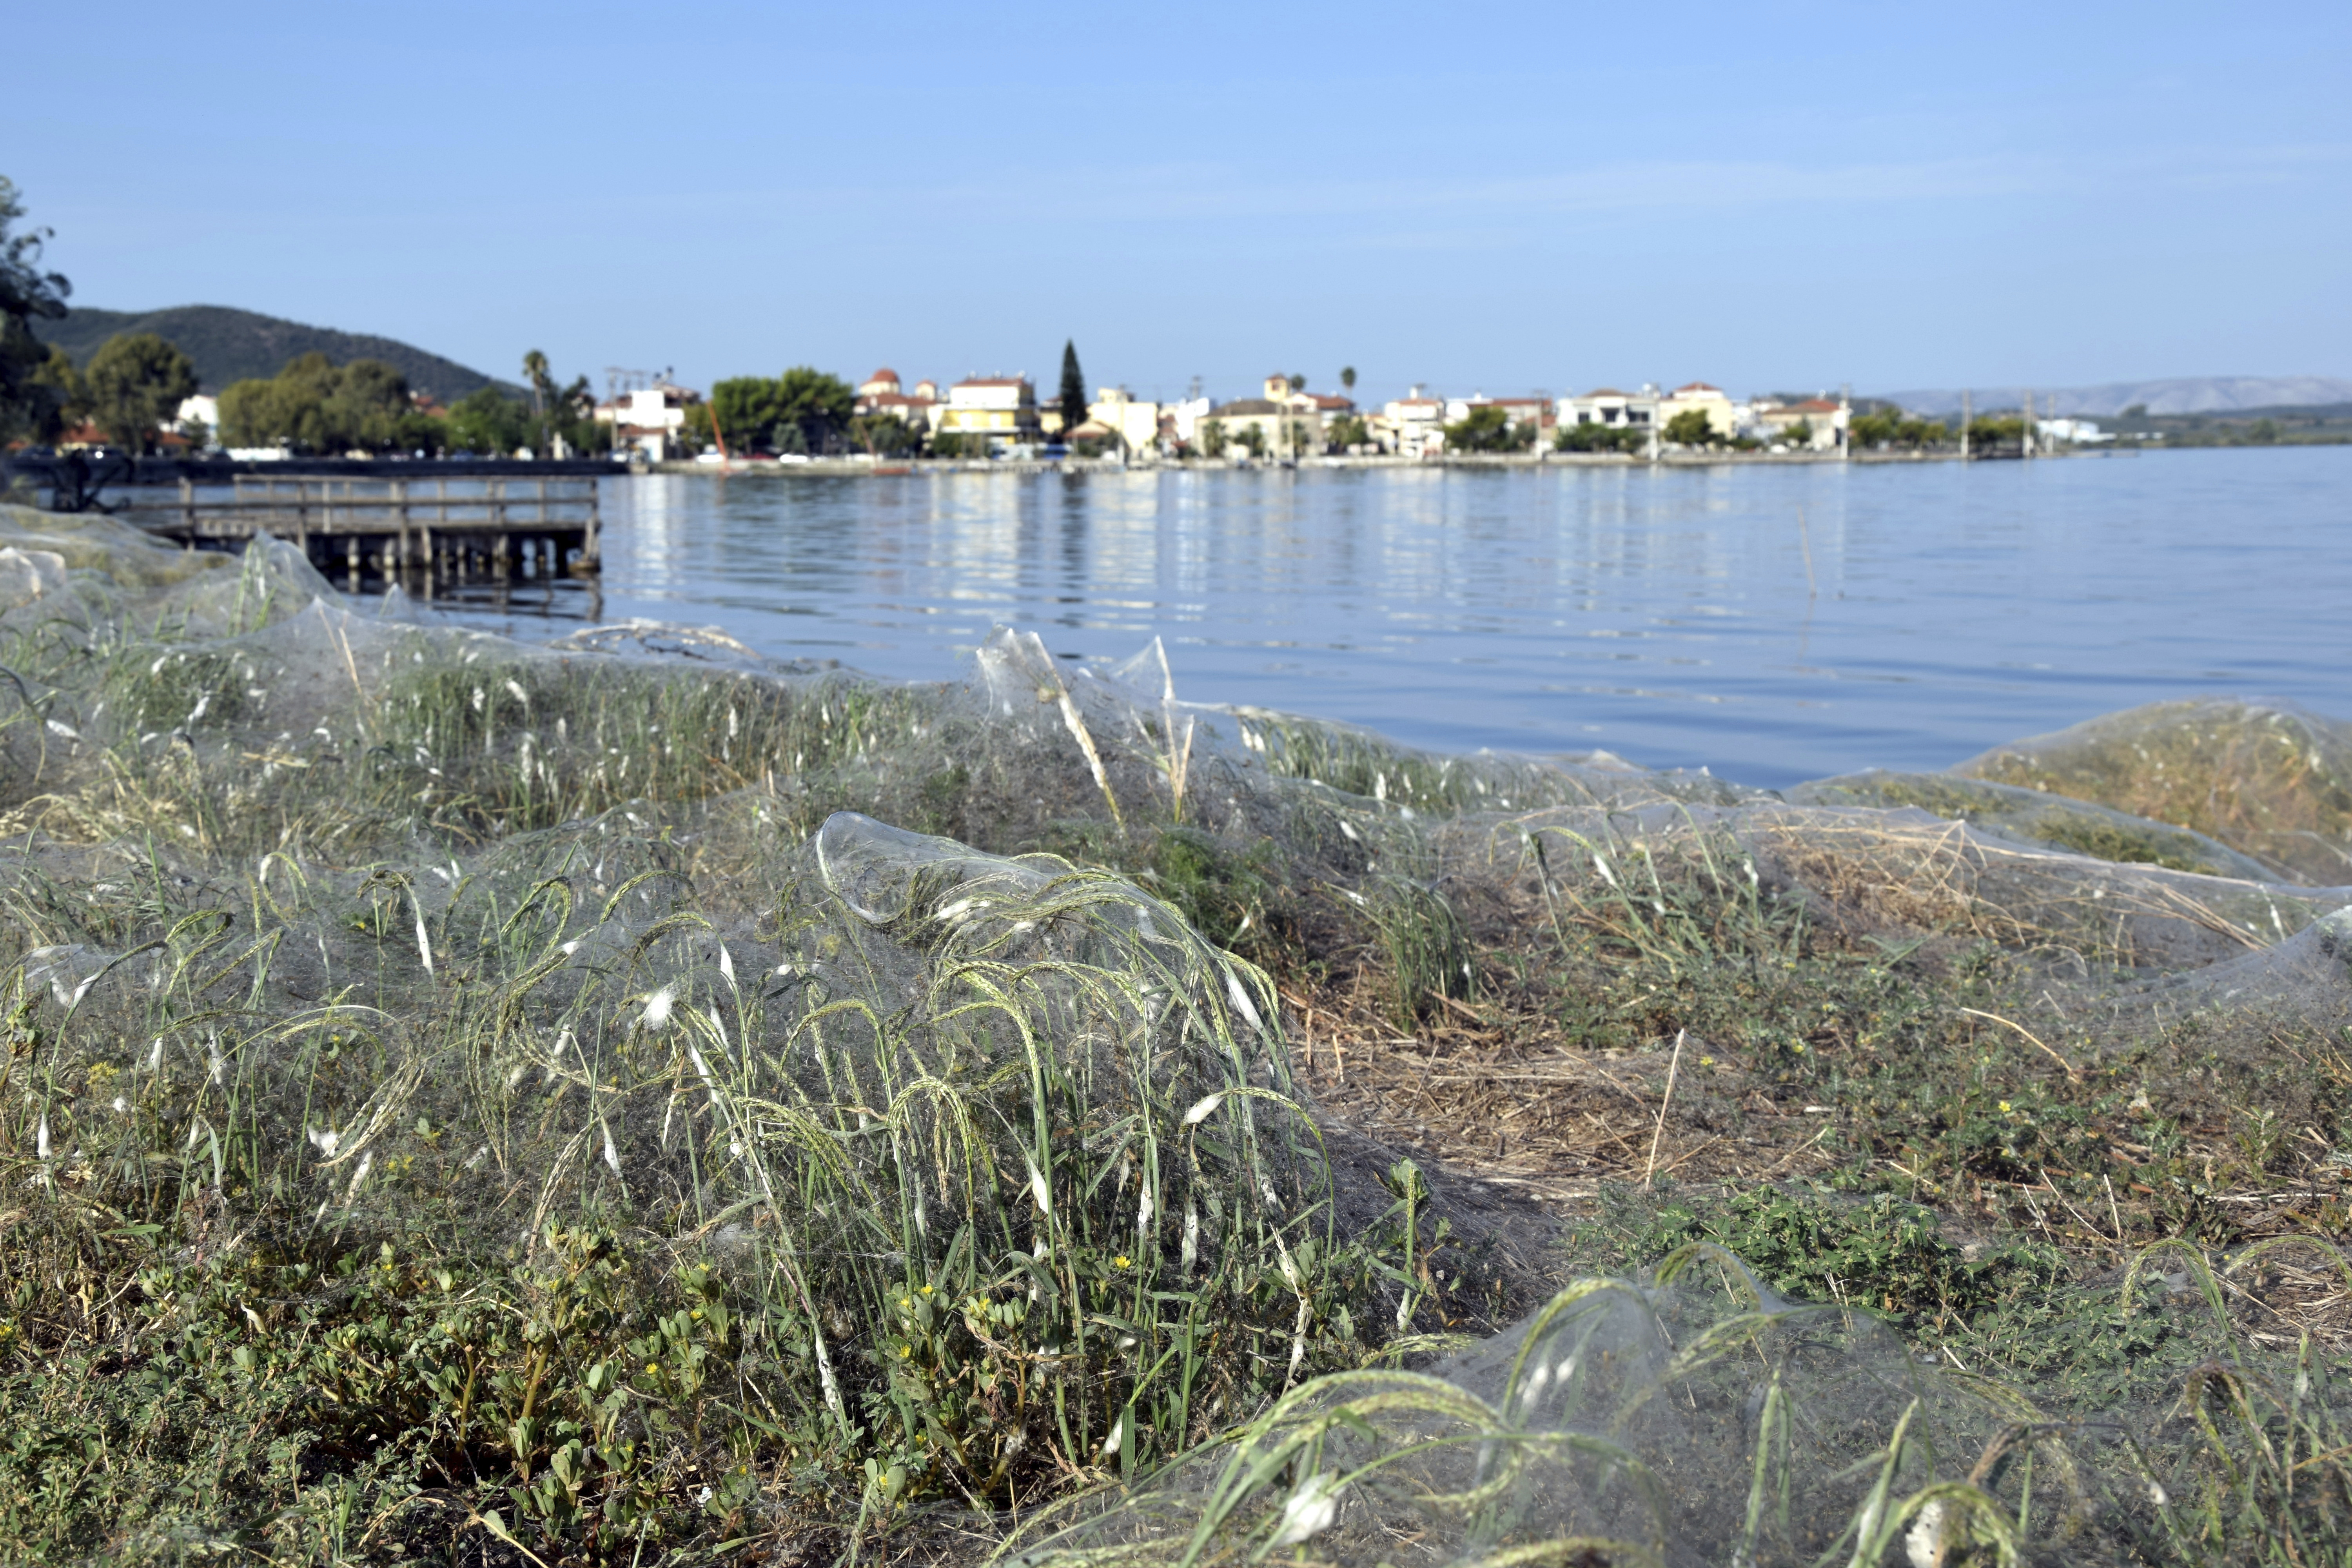 In this Wednesday, Sept. 18, 2018 photo, seaside vegetation along a beach at Aitoliko, in western Greece, is covered in thick spiders' webs. It's not quite the World Wide Web _ but the spiders of Aitoliko ihave made a good start. Spurred into overdrive by an explosion in populations of insects they eat, thousands of little spiders in the western town have spun a sticky white line extending for a few hundred meters along the shoreline. (AP Photo/Giannis Giannakopoulos.)